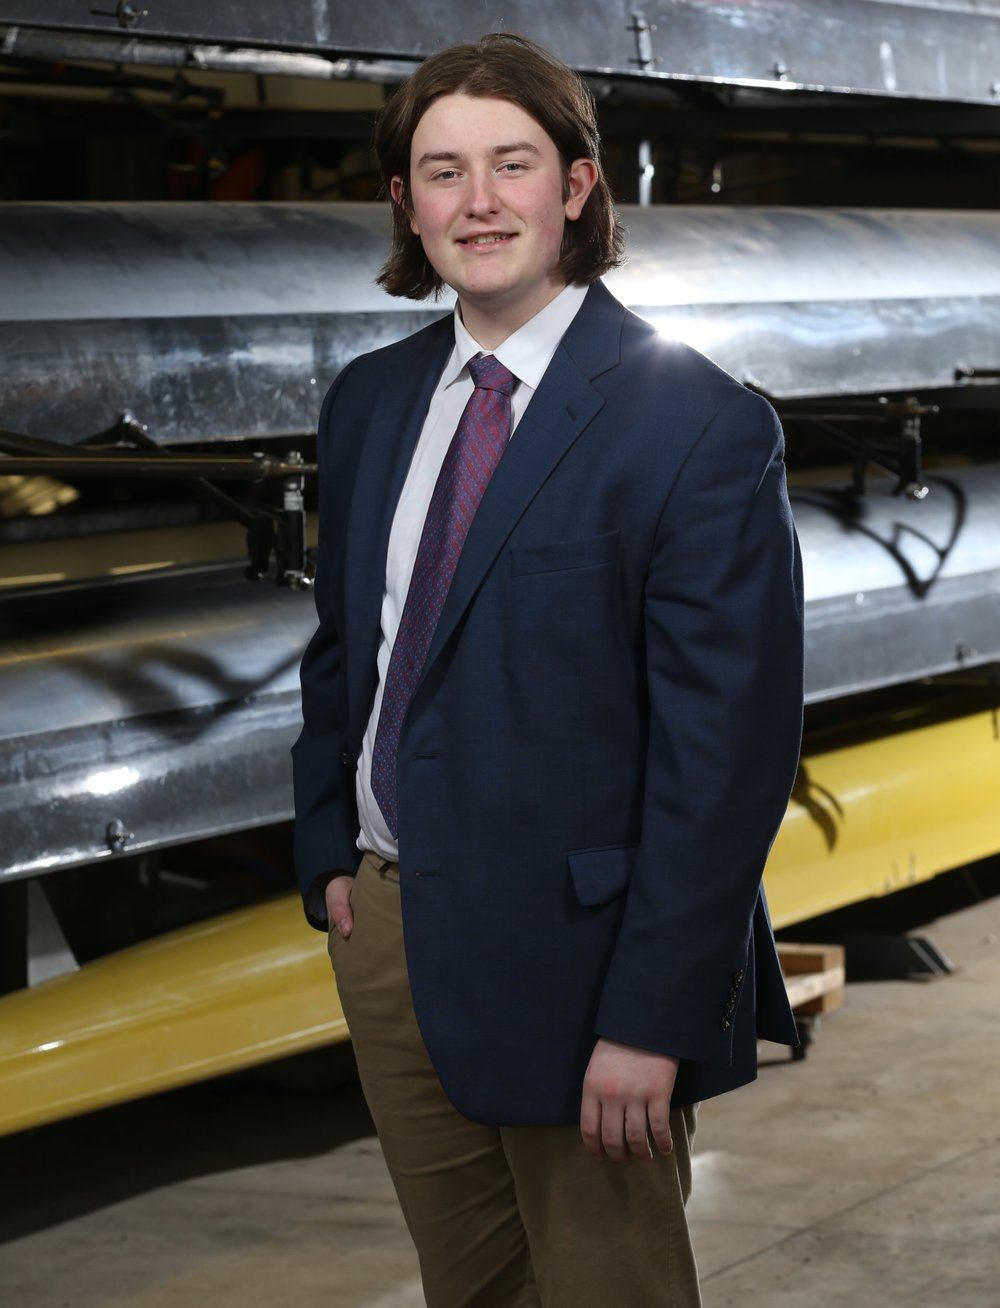 My name is Owen Baird. I am a 16 year old sophomore at McQuaid Jesuit High School and a varsity rower for two years on the McQuaid Jesuit Crew Teams. I am excited to row with Row for Hope so that I can help people suffering from cancer through Camp Good Days and Special Times.